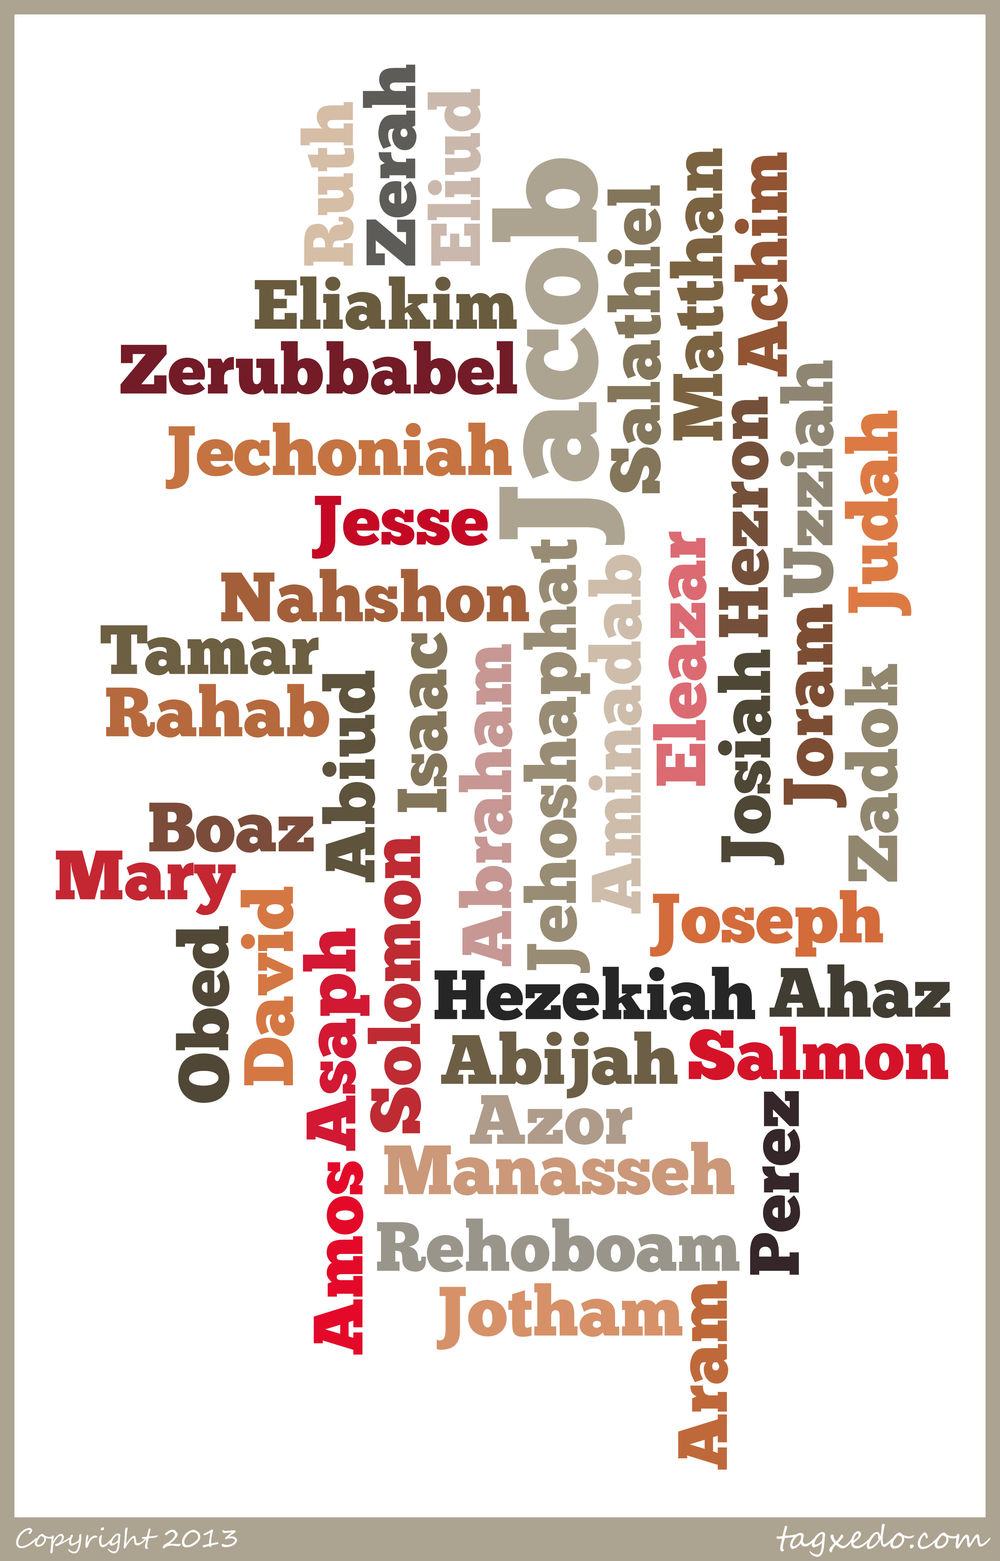 Names graphic.jpg